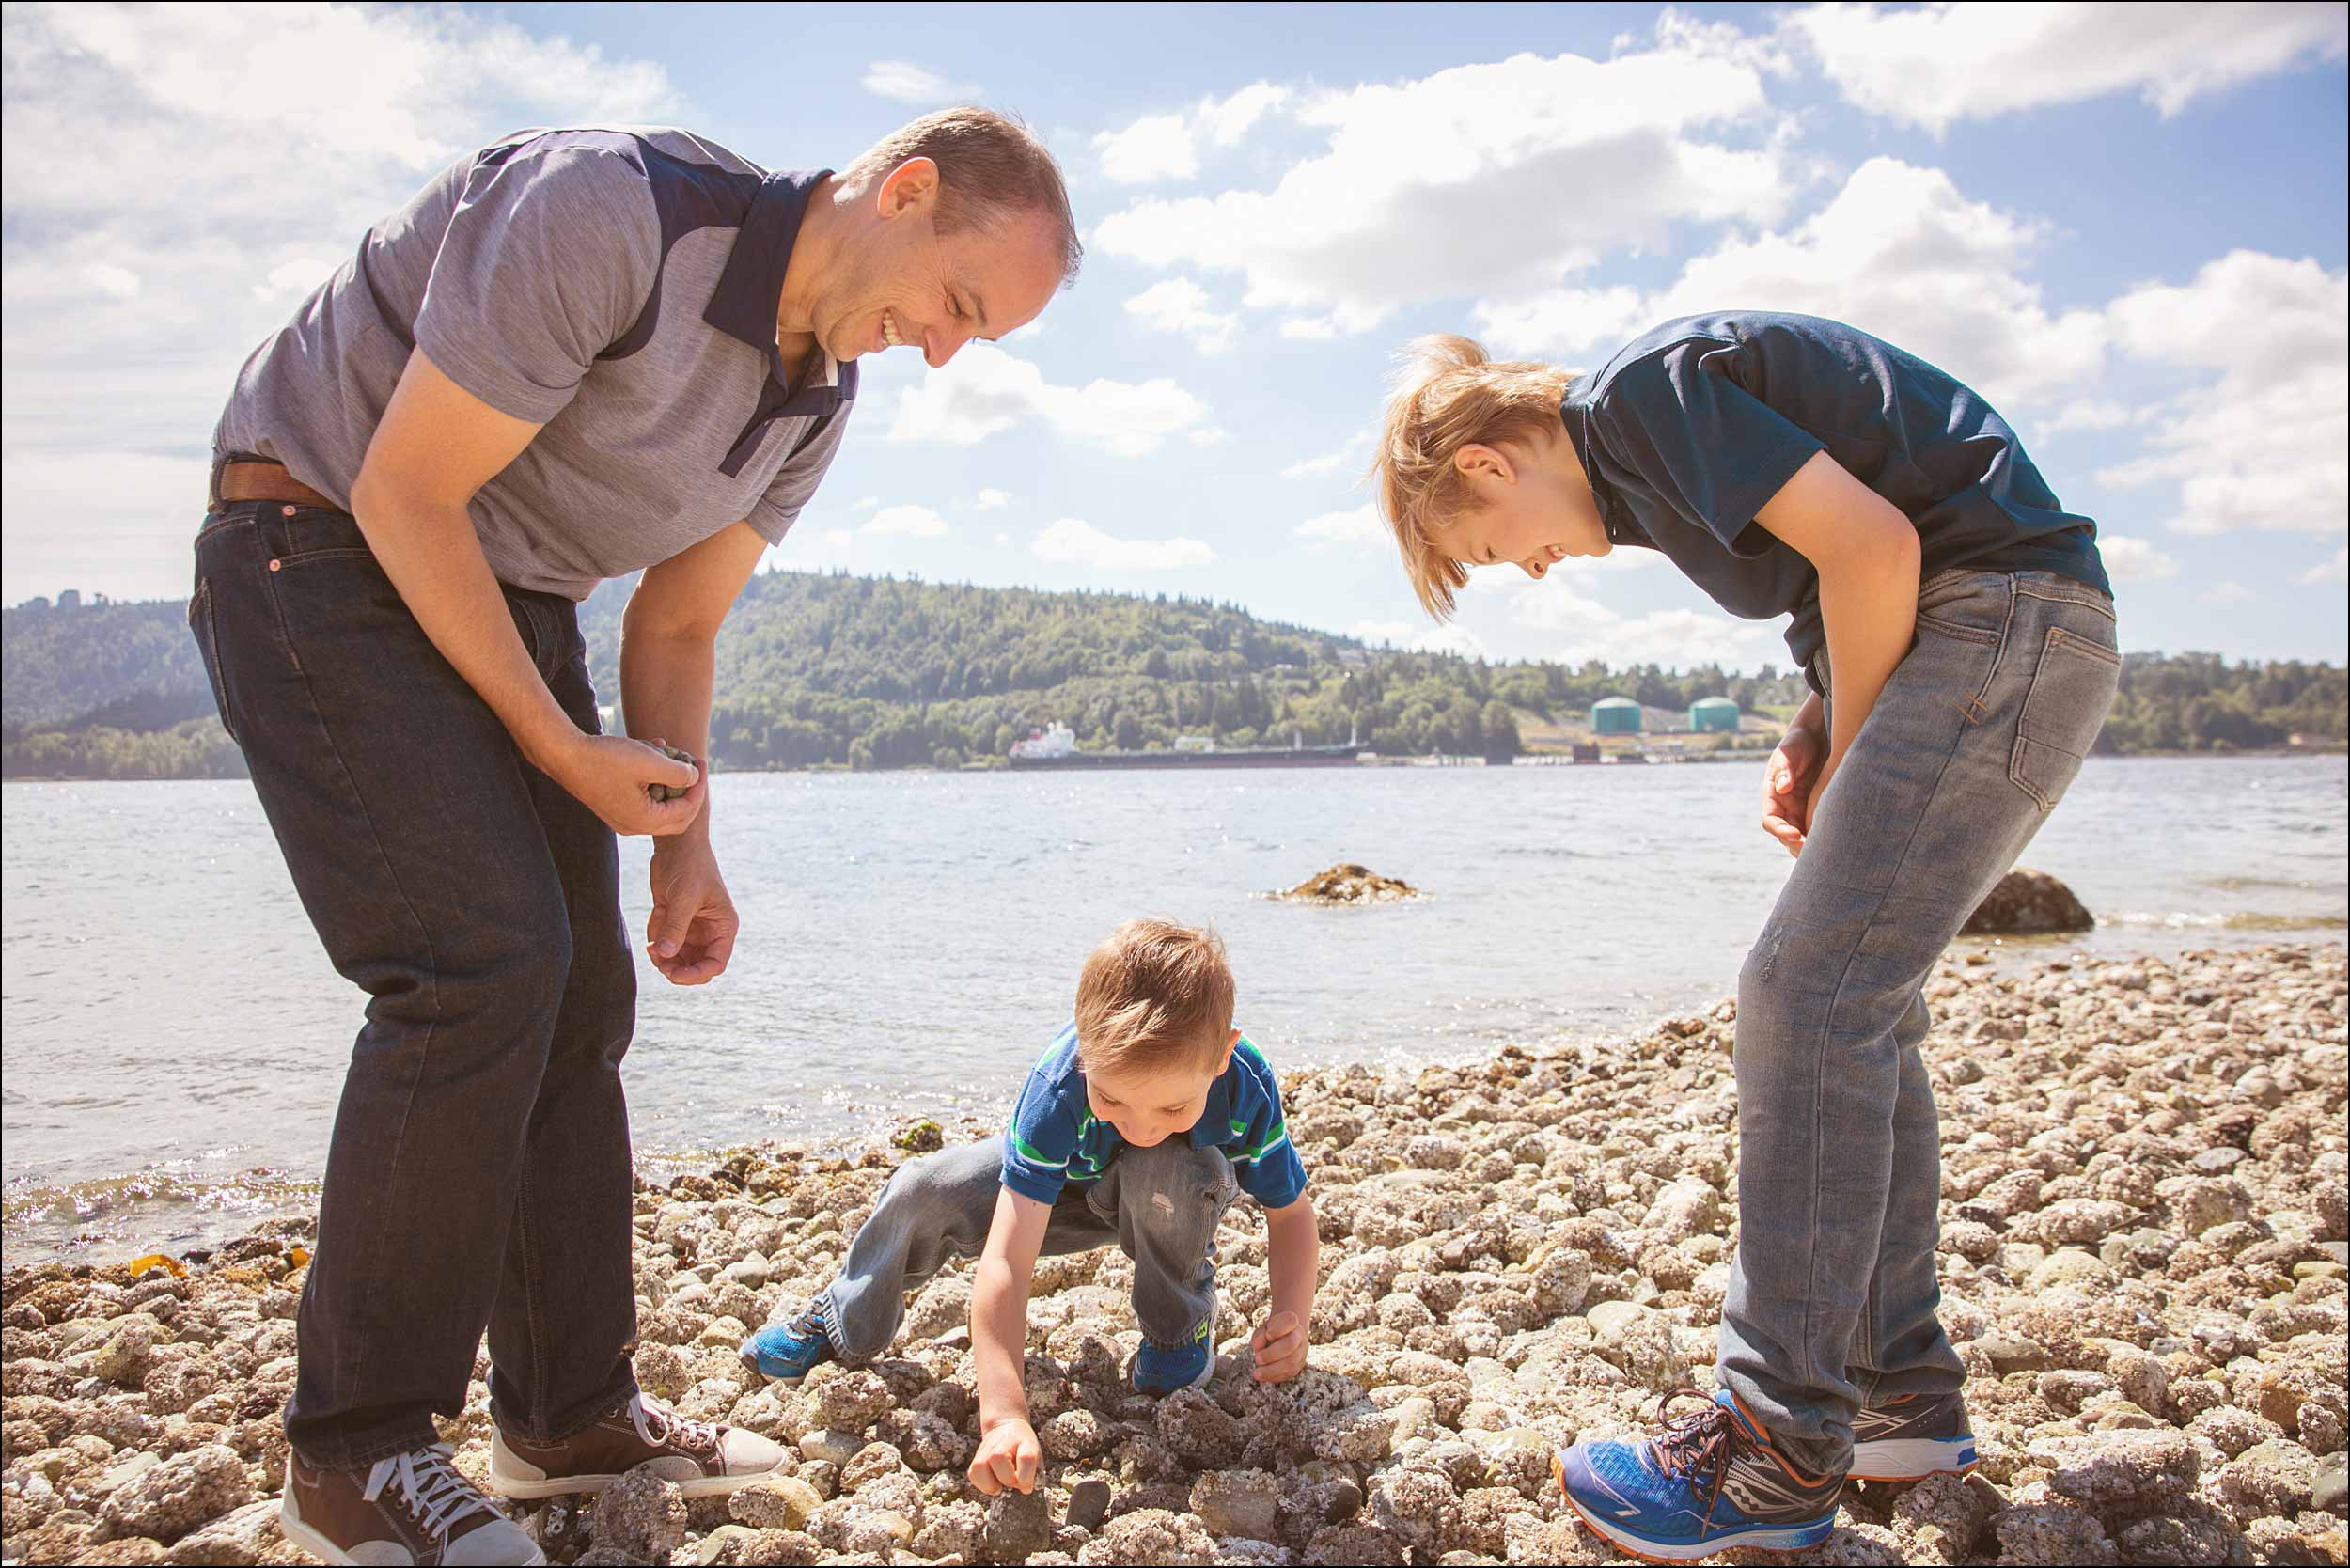 North Vancouver family photo session on the beach searching for crabs.